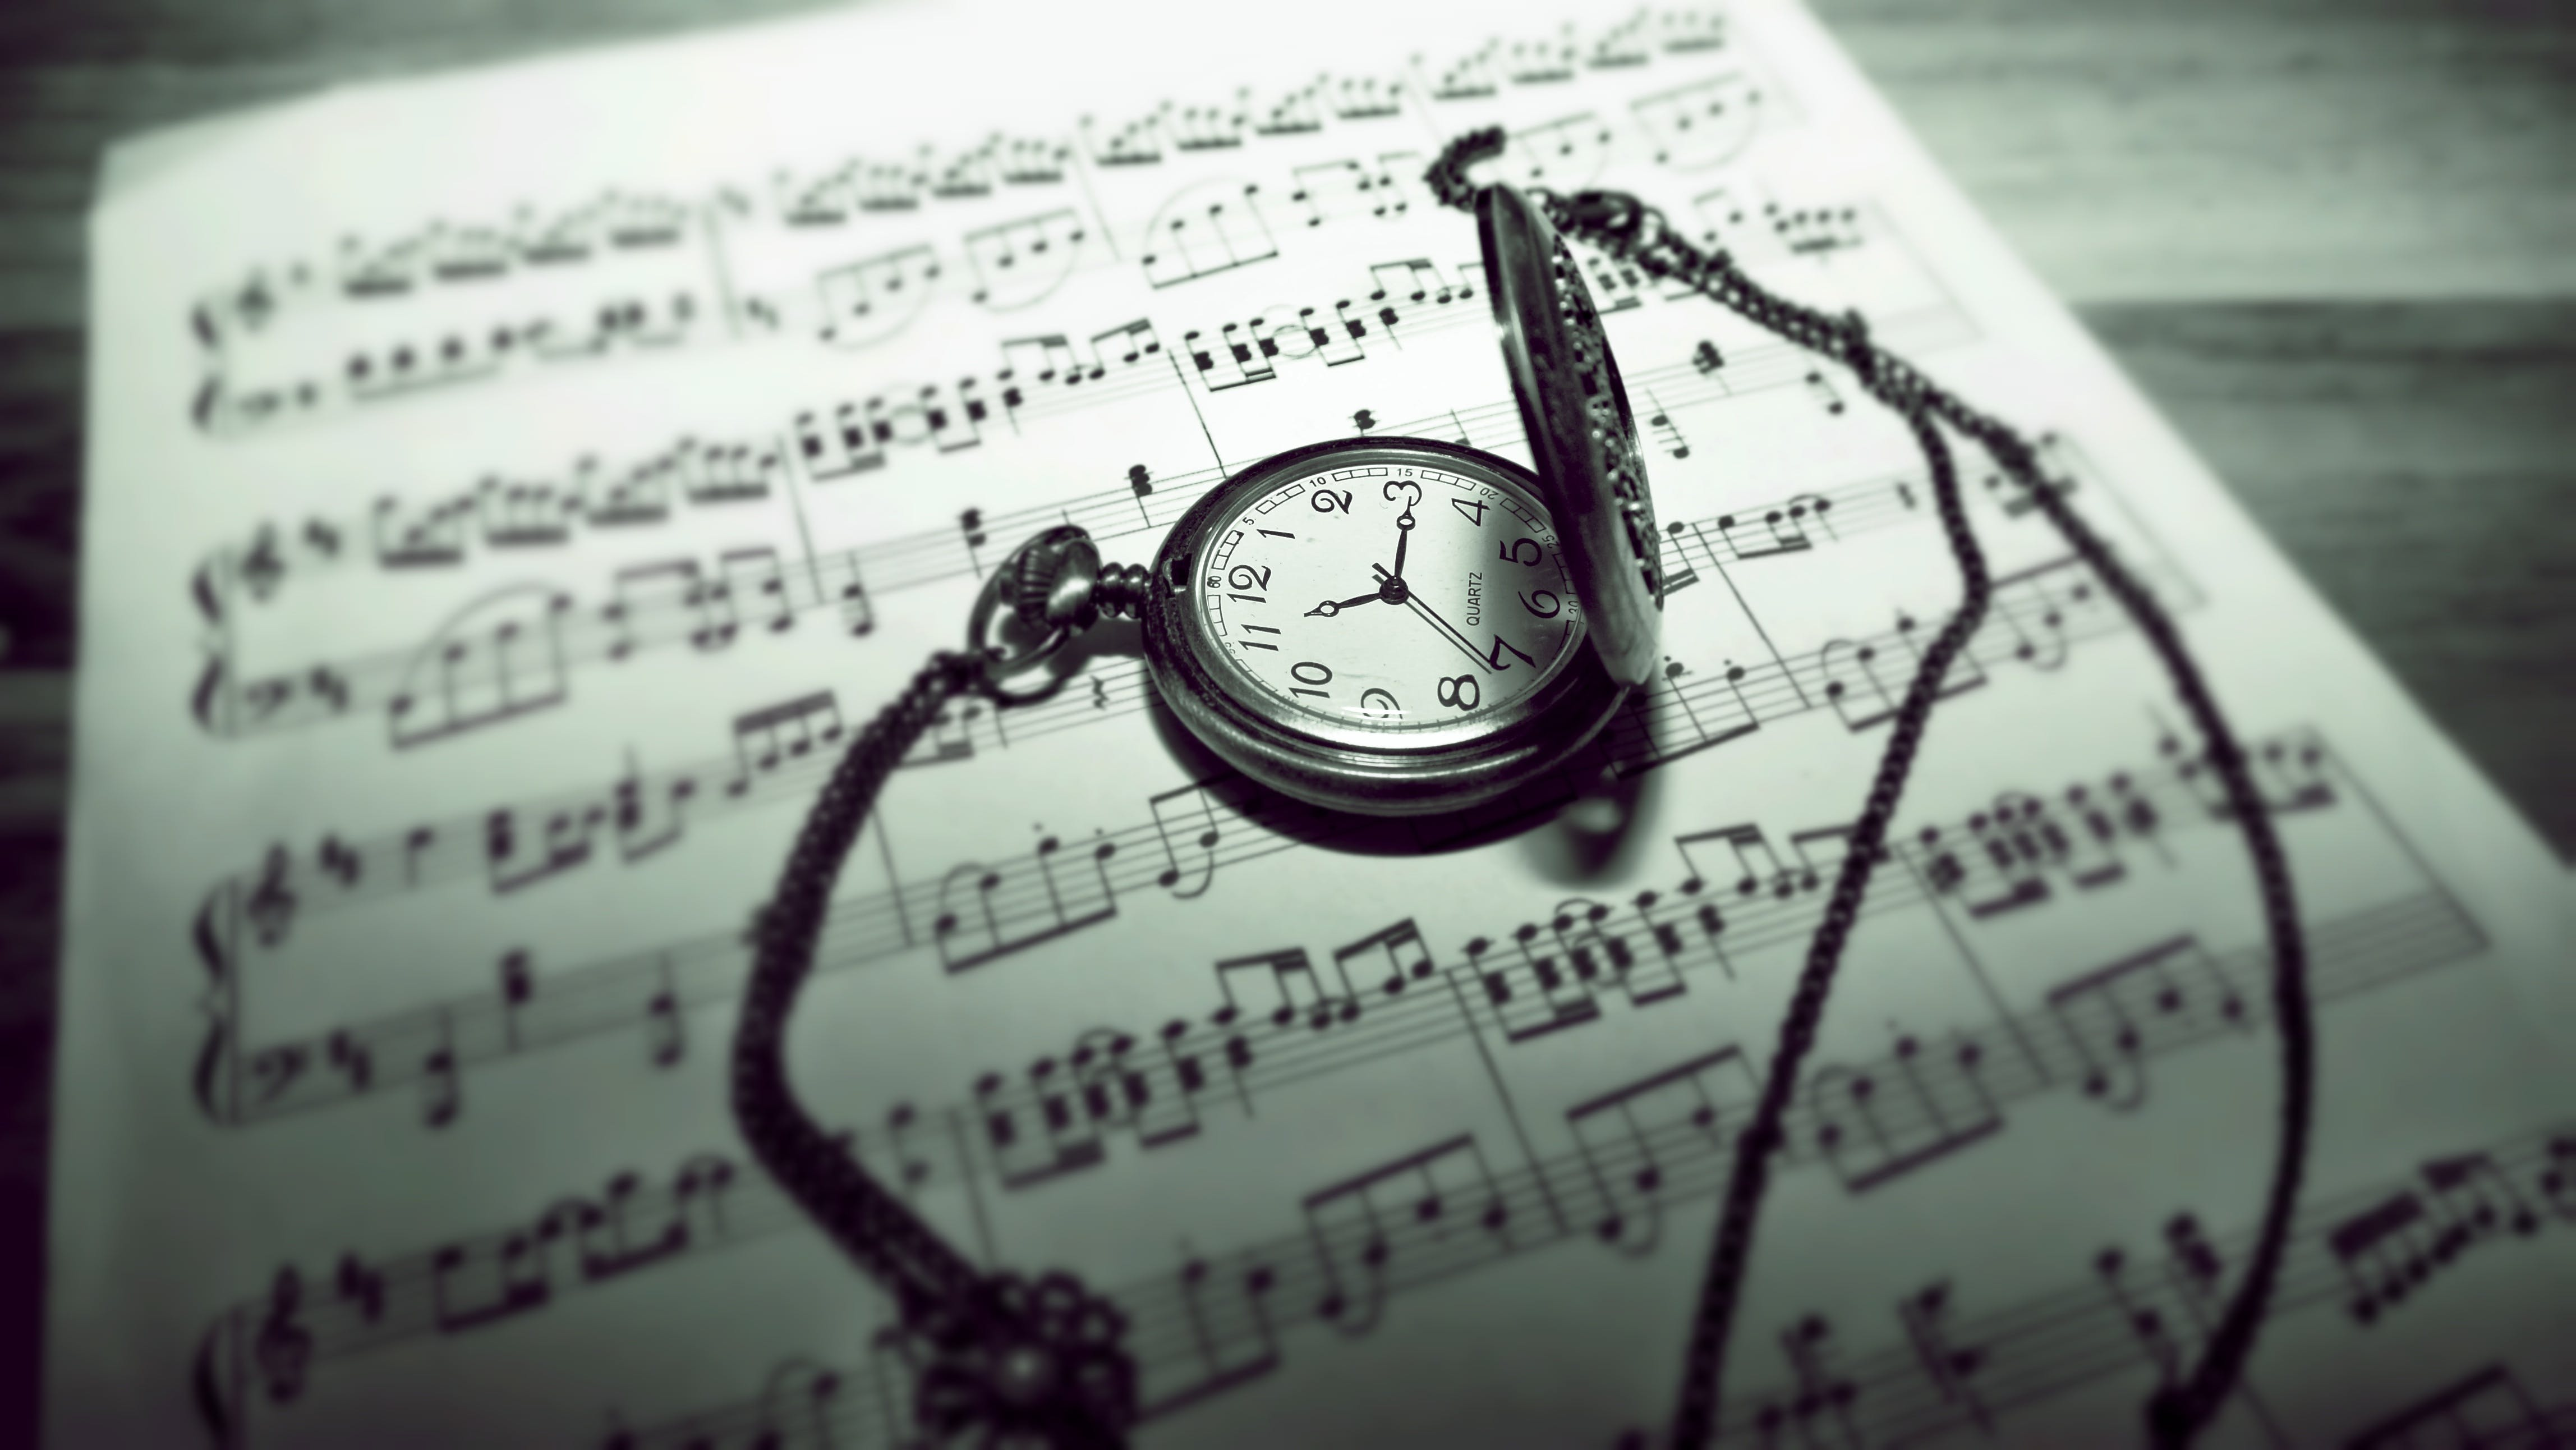 Round Gray Pocket Watch Reading 11:15 Placed on Music Sheet